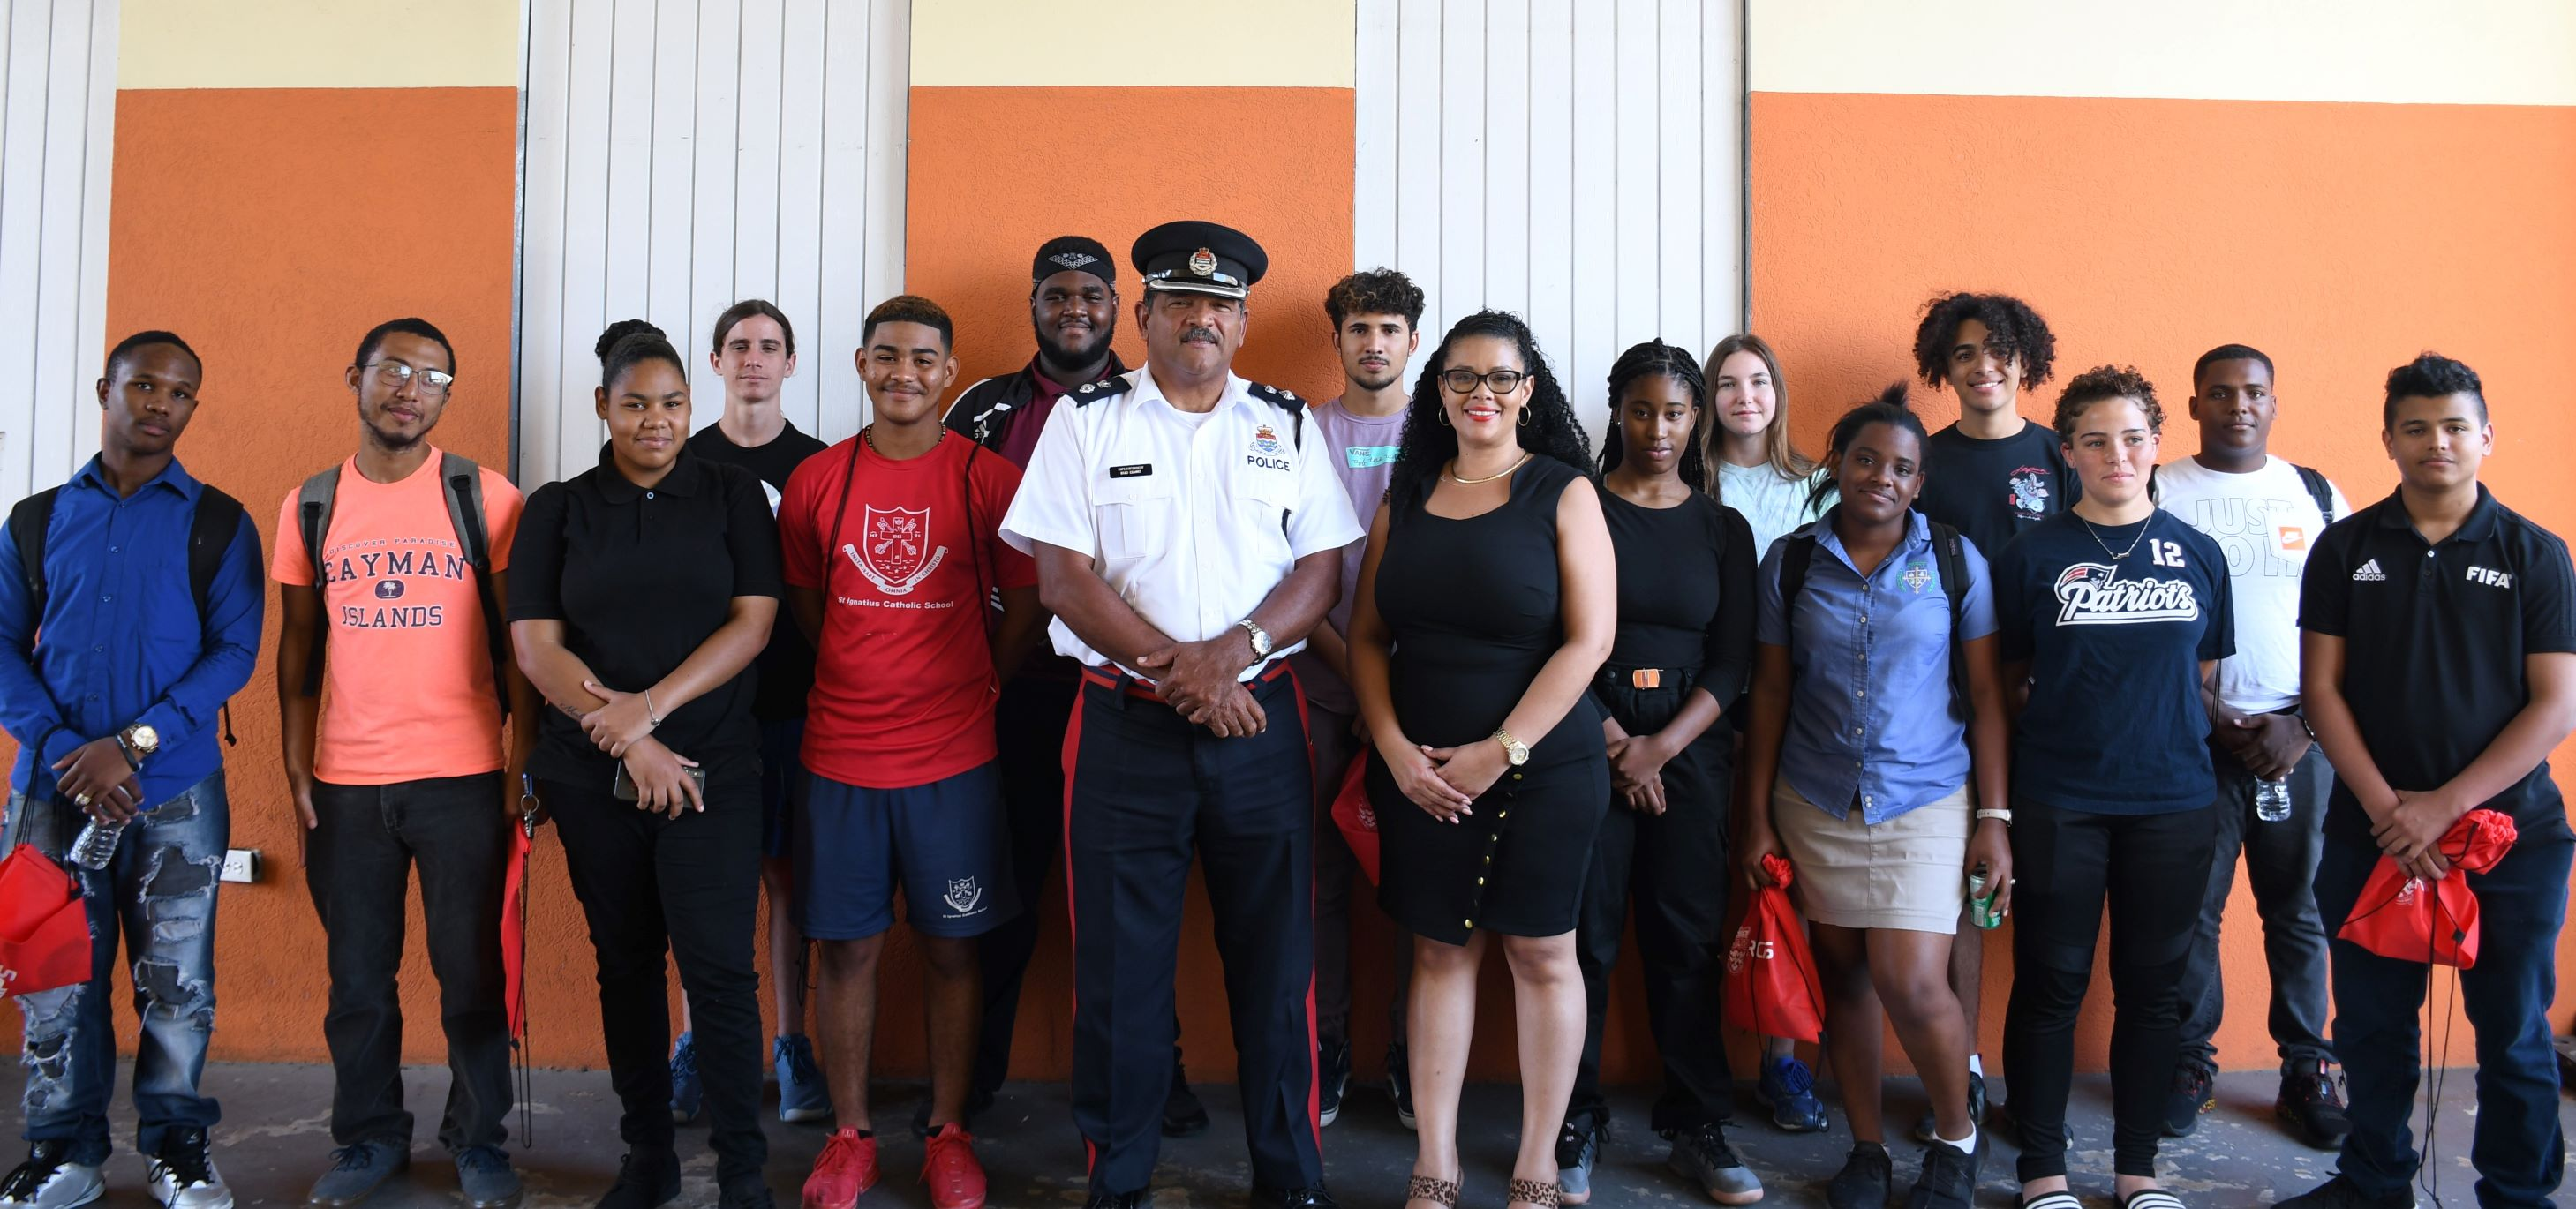 A/Supt. Brad Ebanks & HR Officer Samantha Bodden pose with the tour participants.